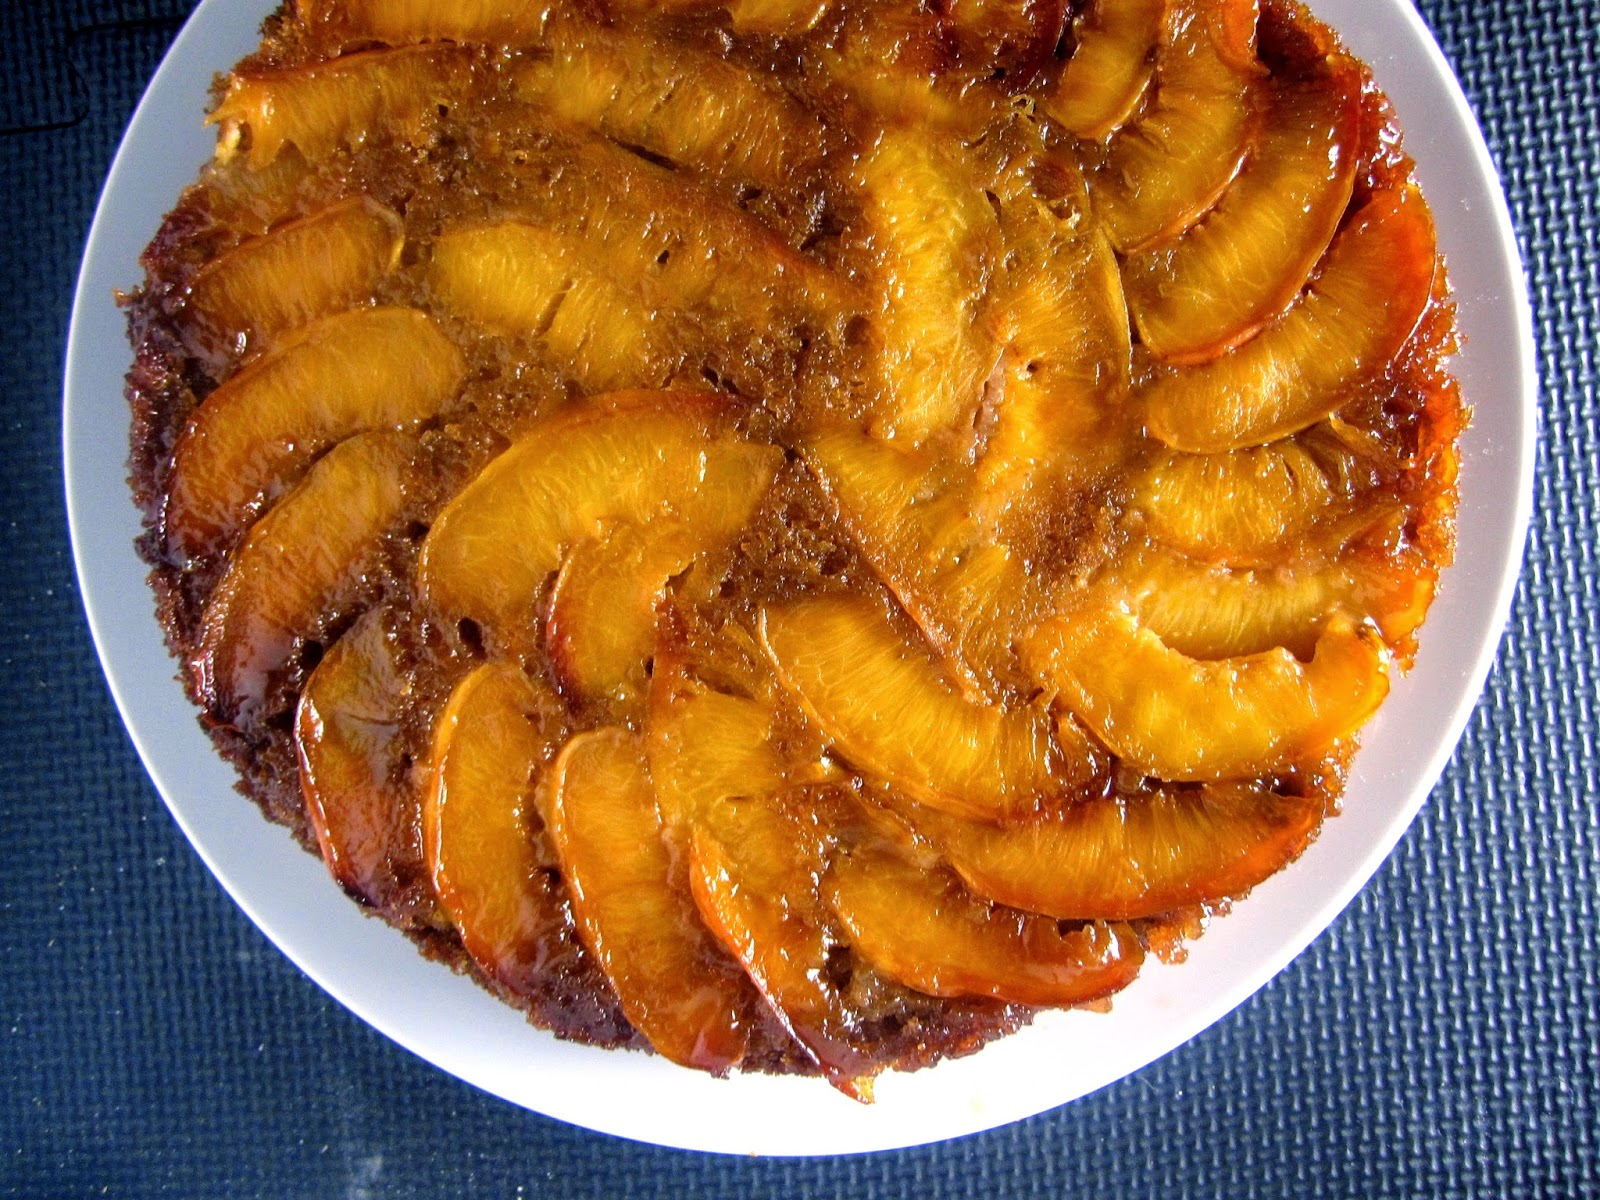 Whole Wheat Nectarine Upside Down Cake